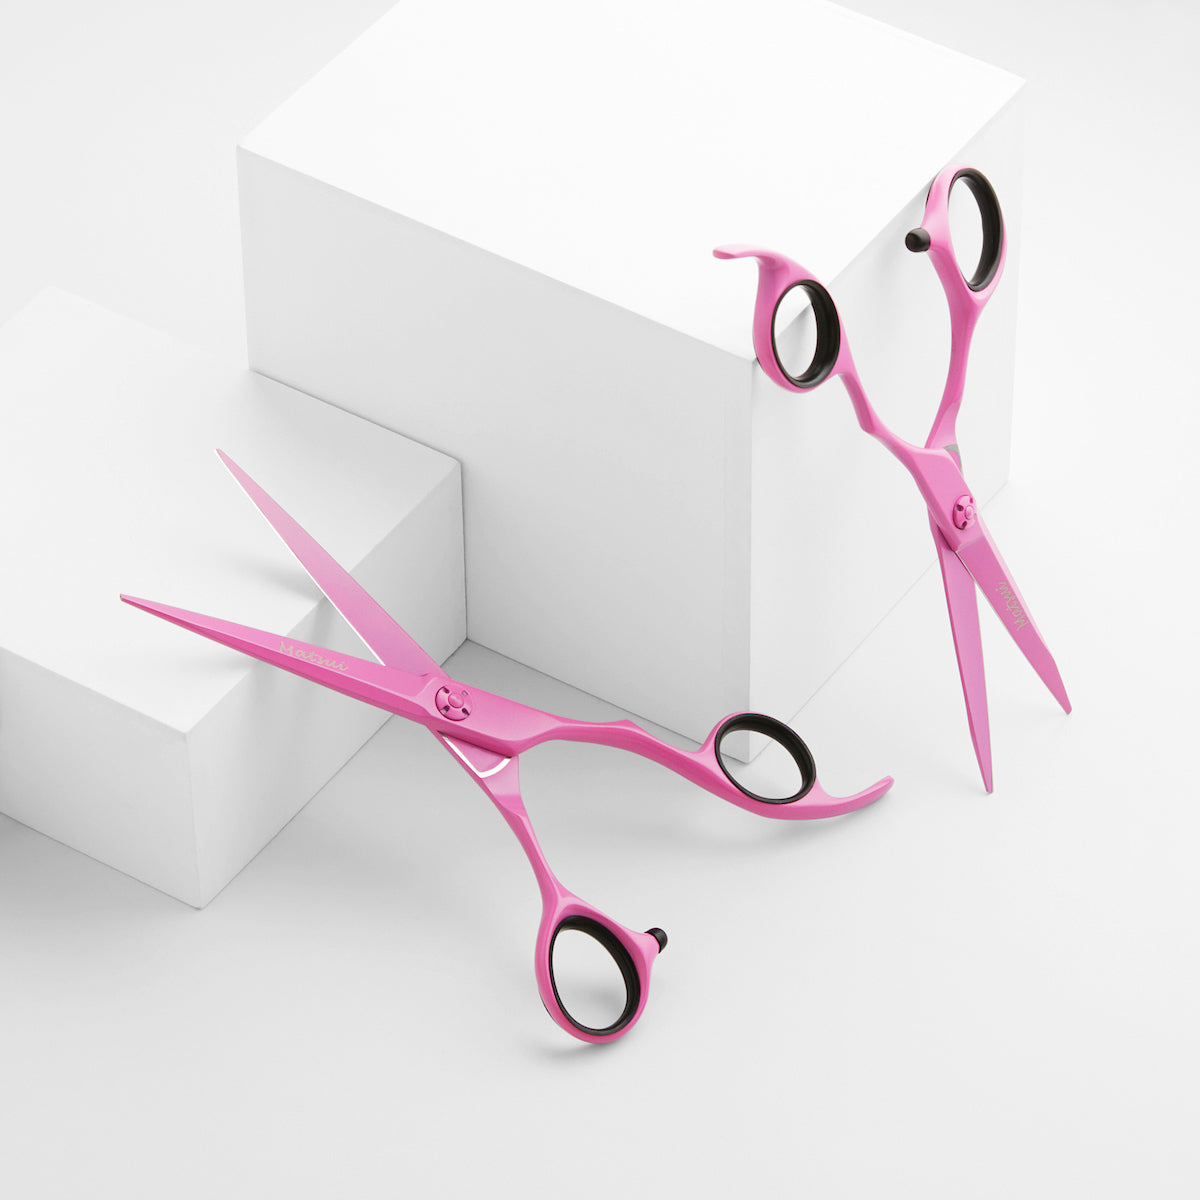 Image result for pinterest scissors pink